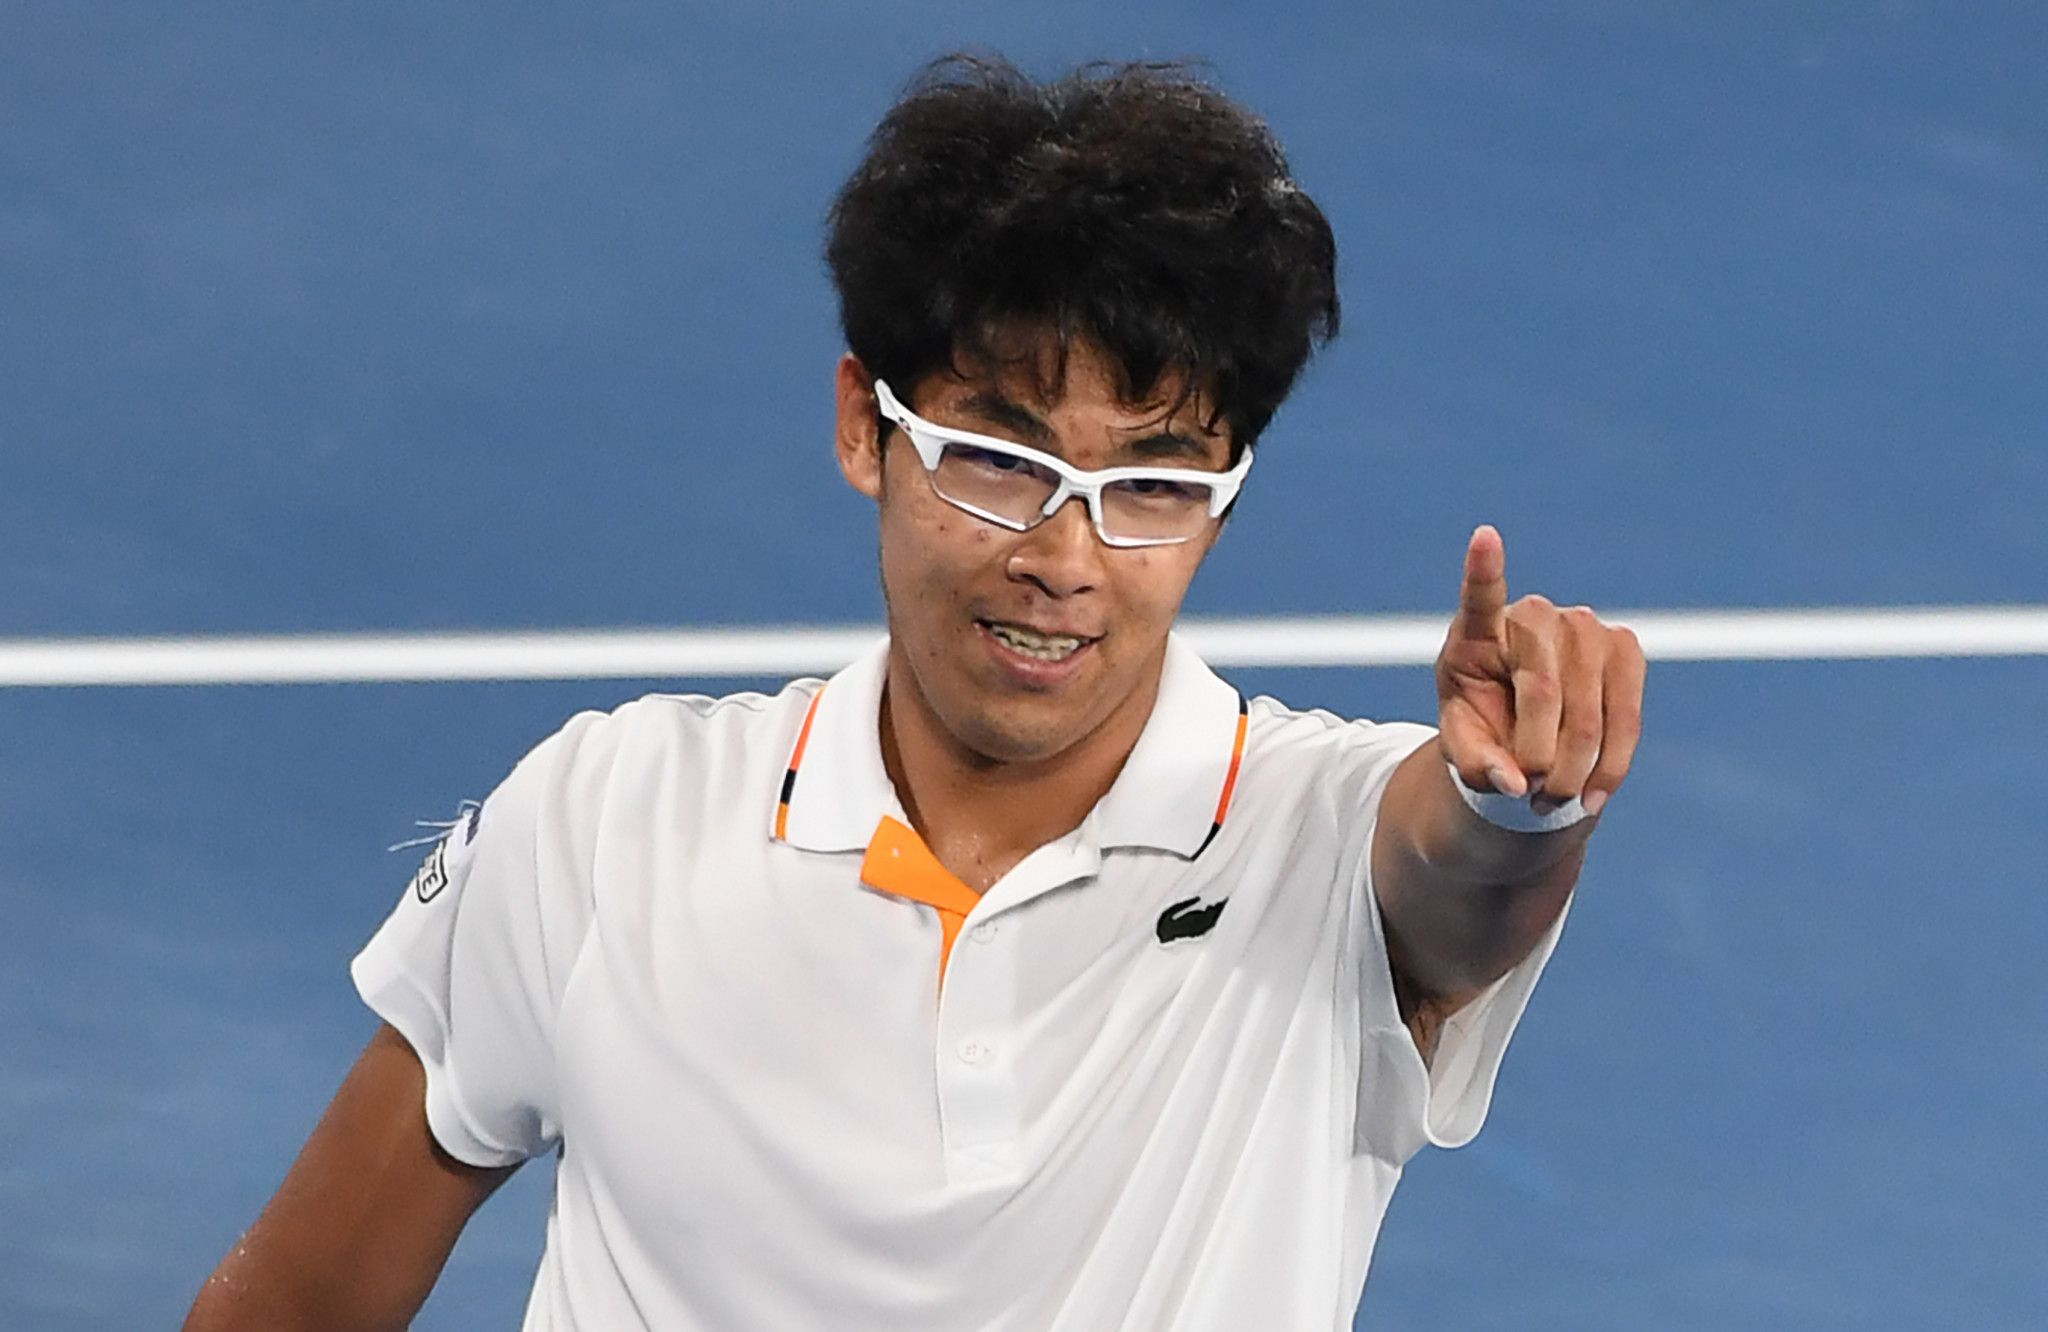 Unseeded Hyeon Chung stunned Novak Djokovic at the Australian Open ©Getty Images